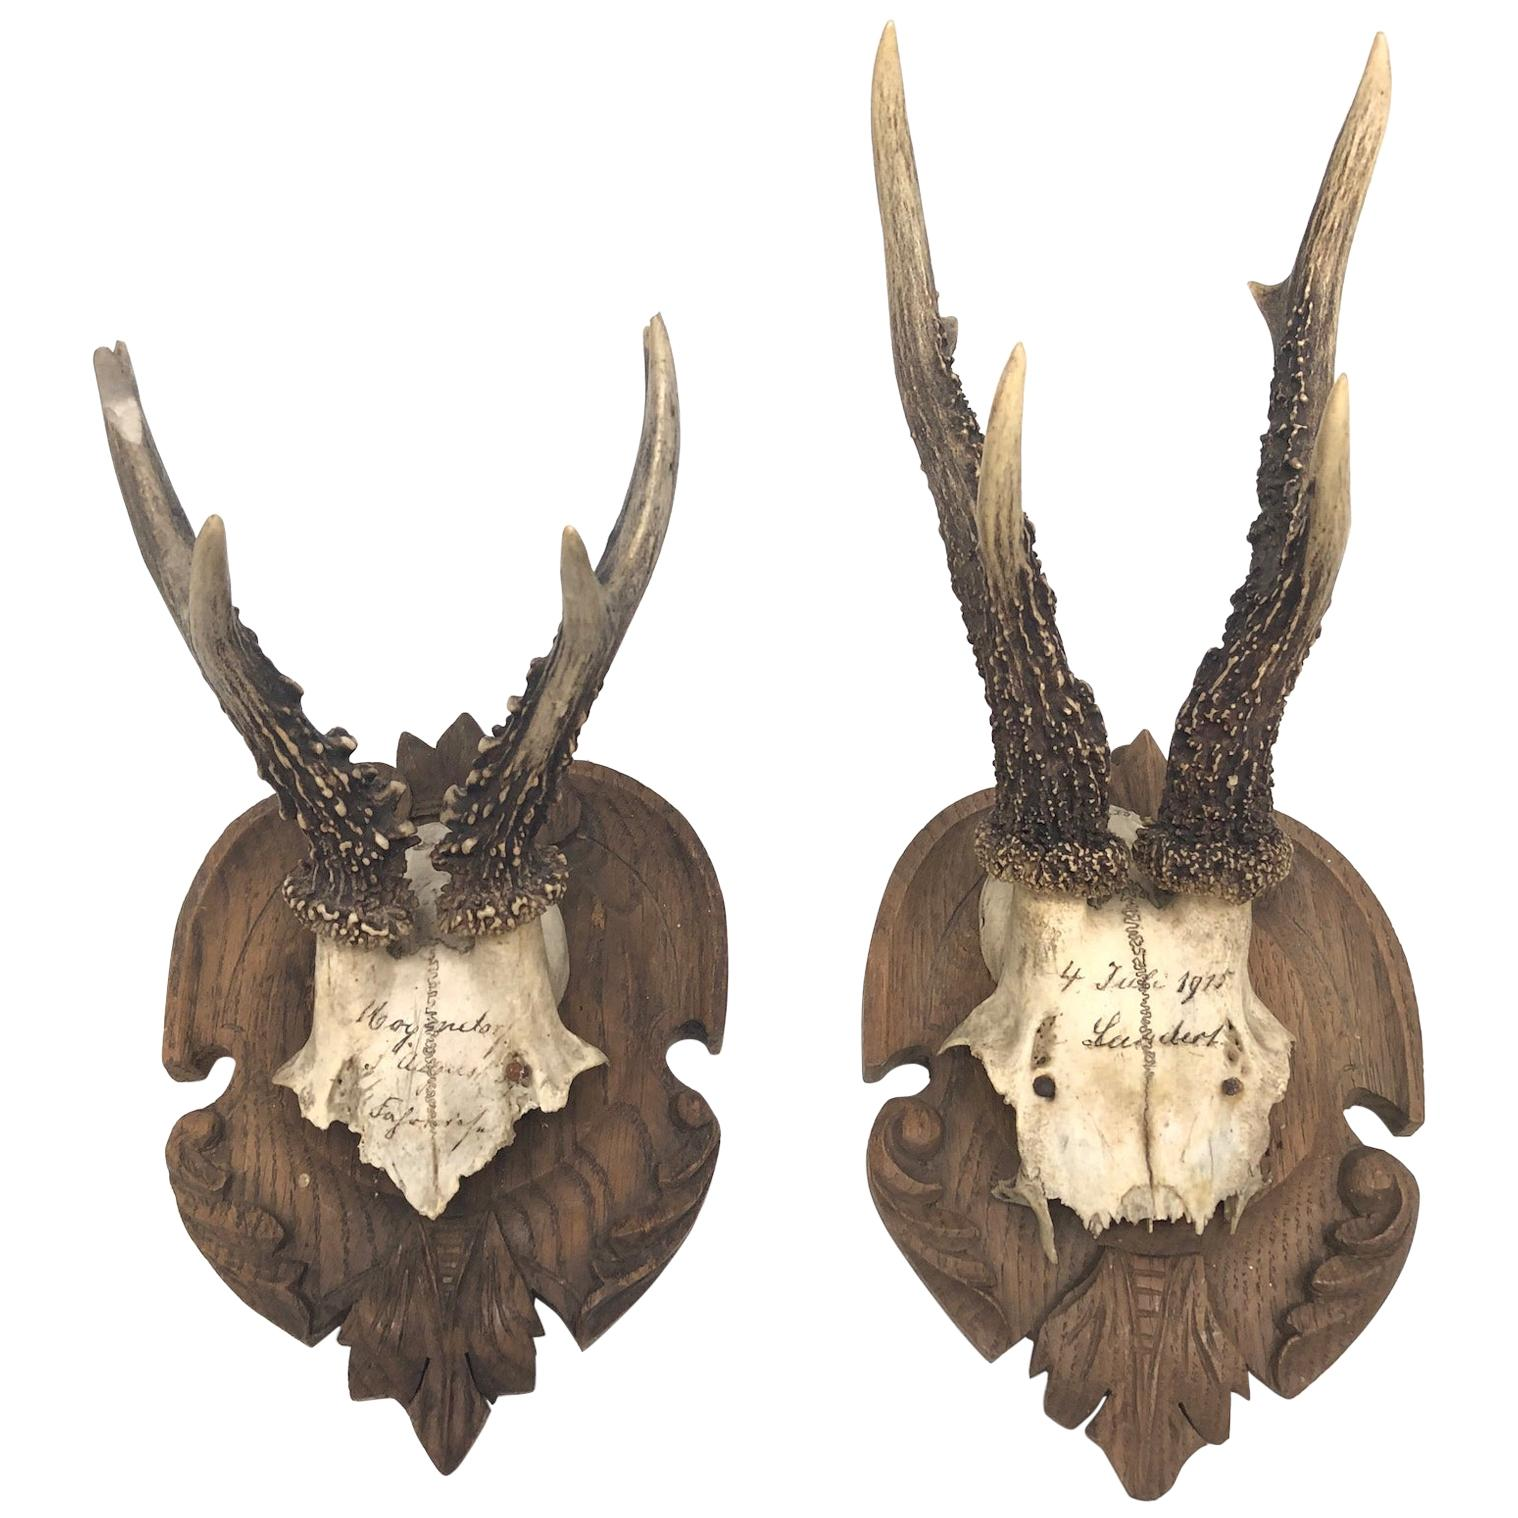 Antique and Vintage Taxidermy - 451 For Sale at 1stdibs